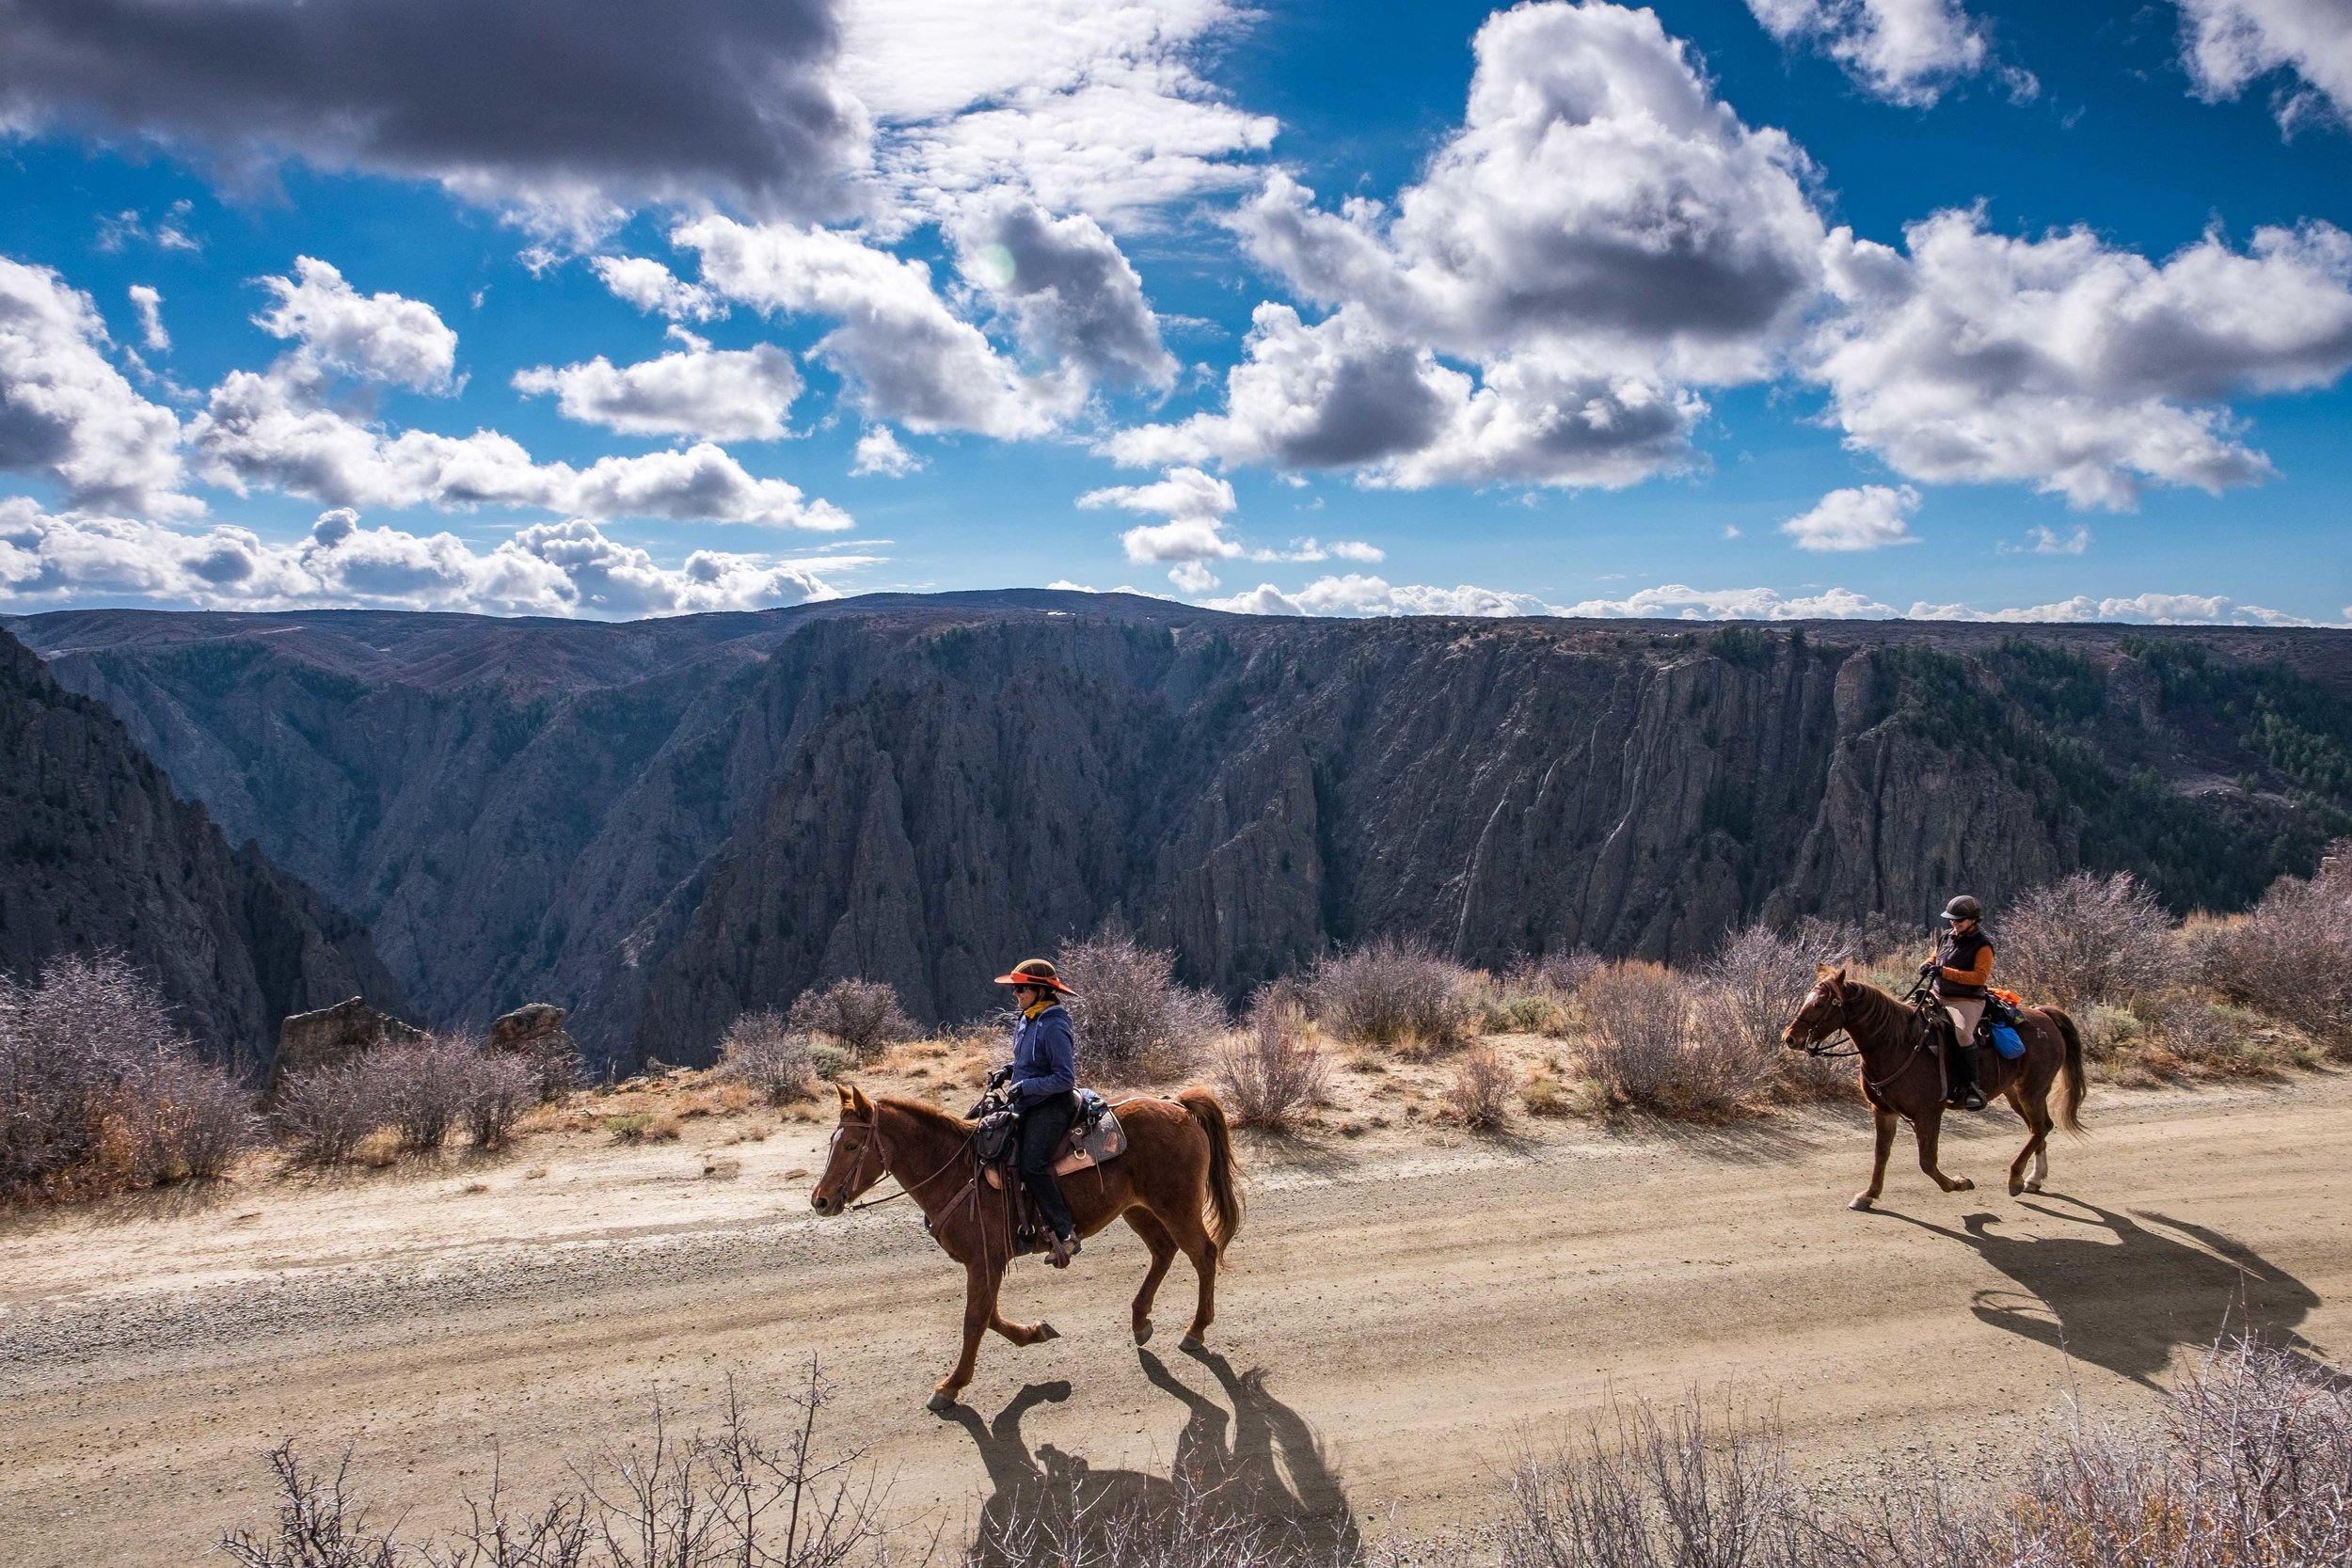 Horseback riding is available on the North Rim only, and it is a beautiful place to ride!